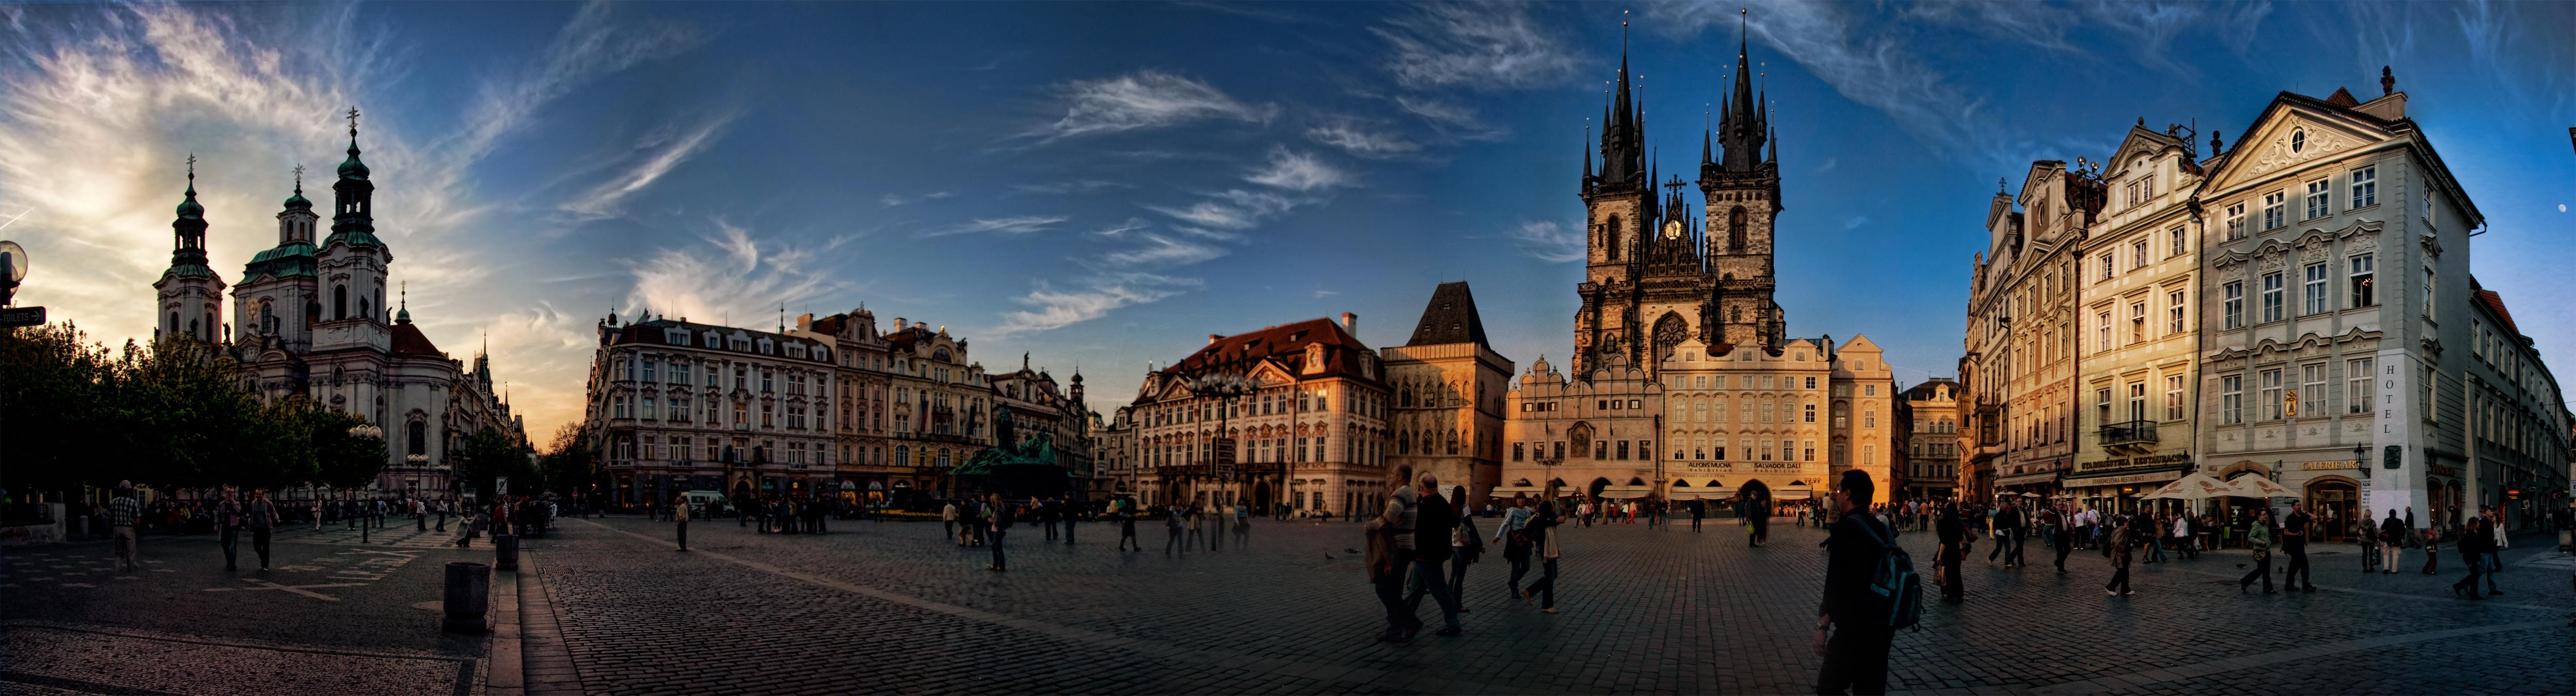 almost-Sunset-Prague-panorama.jpg (5000×1351)